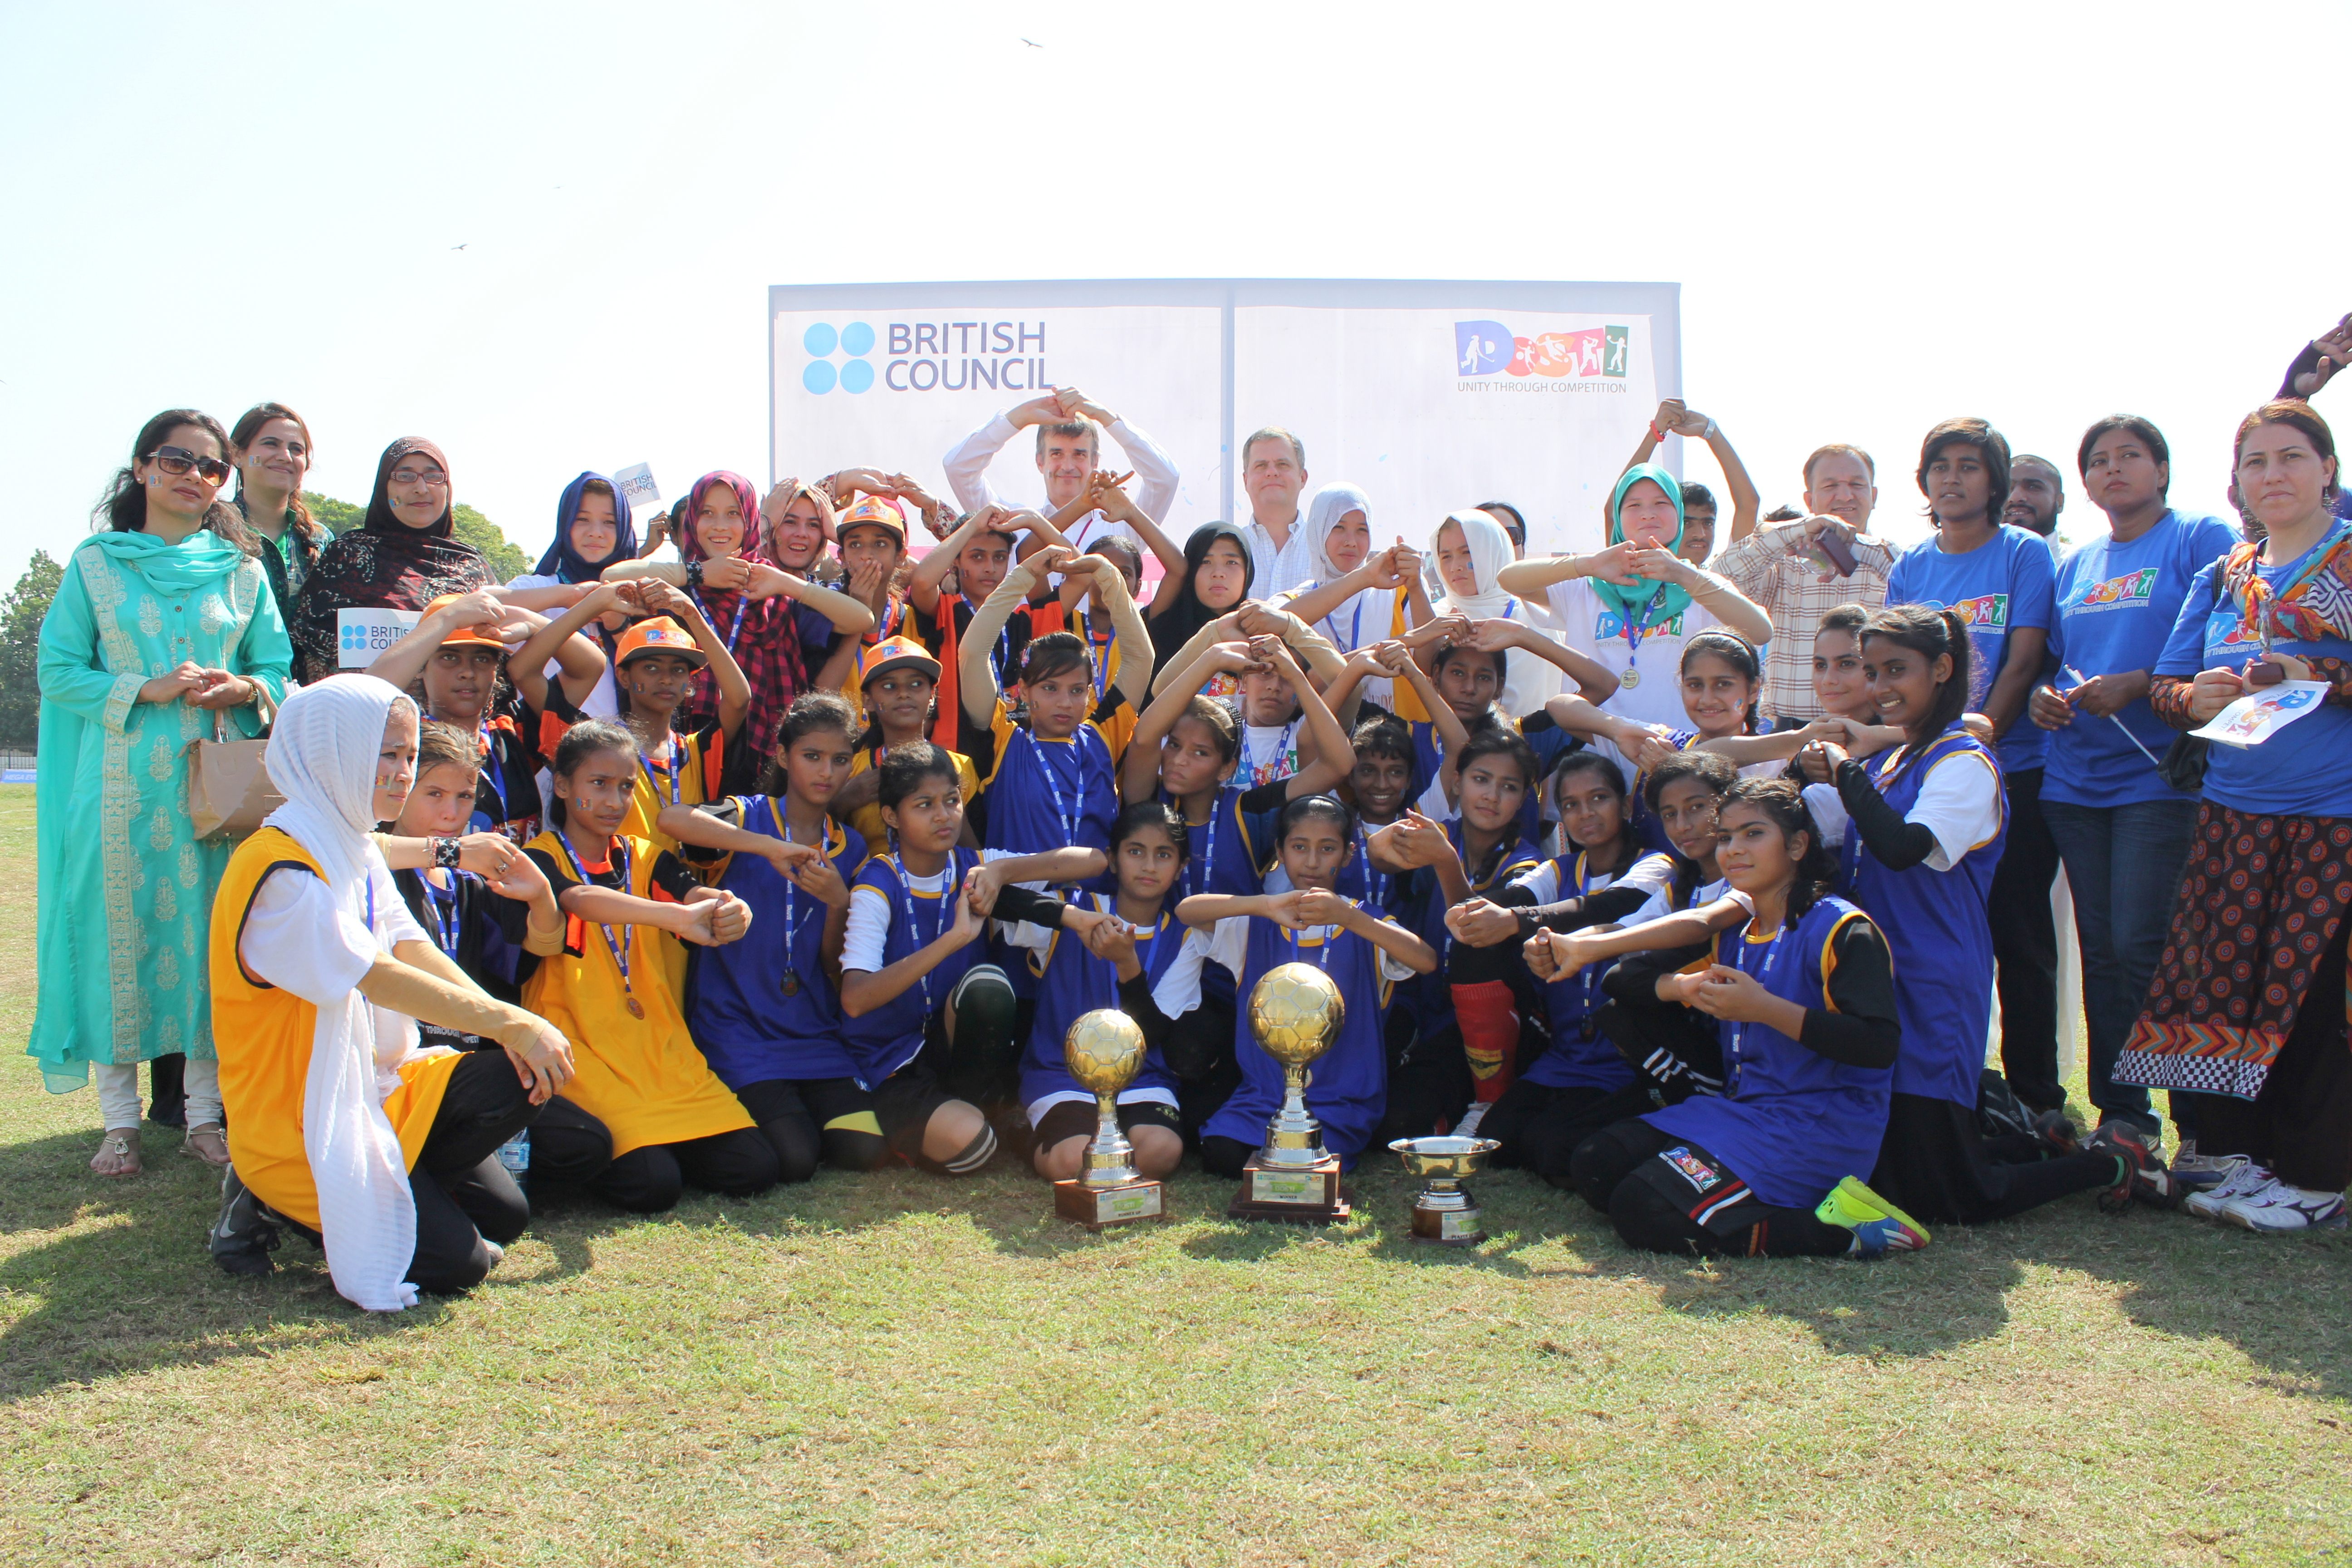 British Council celebrates DOSTI with a football match